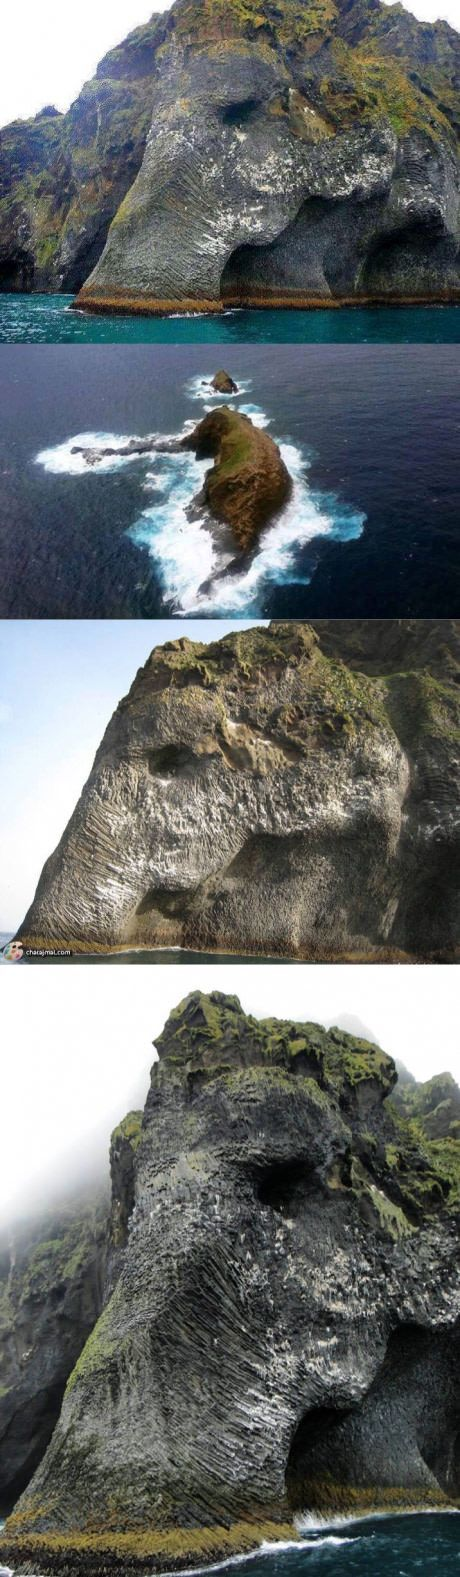 // Elephant Rock in Heimaey, Iceland. I would love to hear the folklore about this little island. //